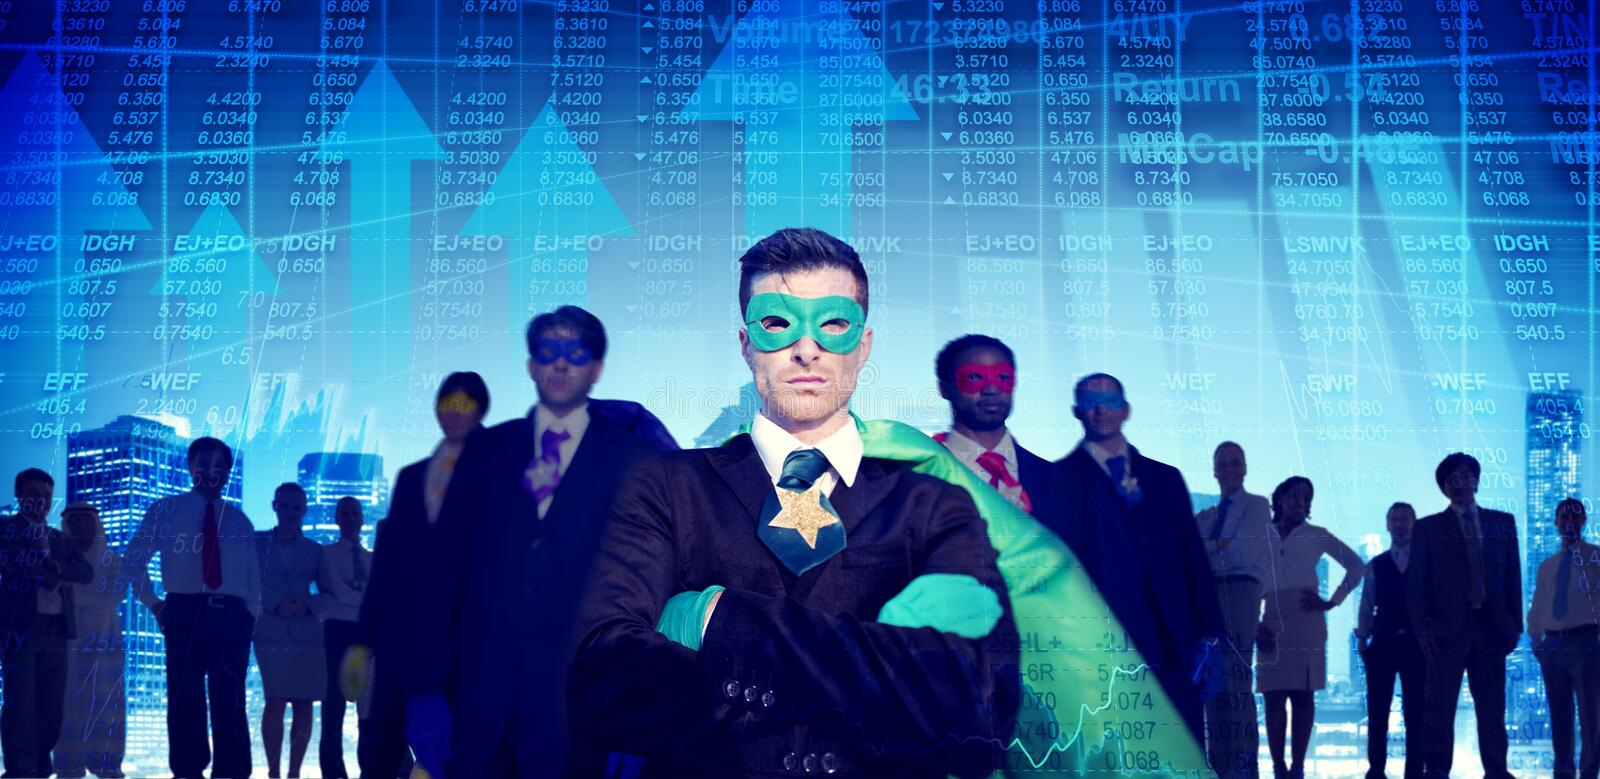 Superhero Aspirations Courage Stock Market Stock Concept stock photography